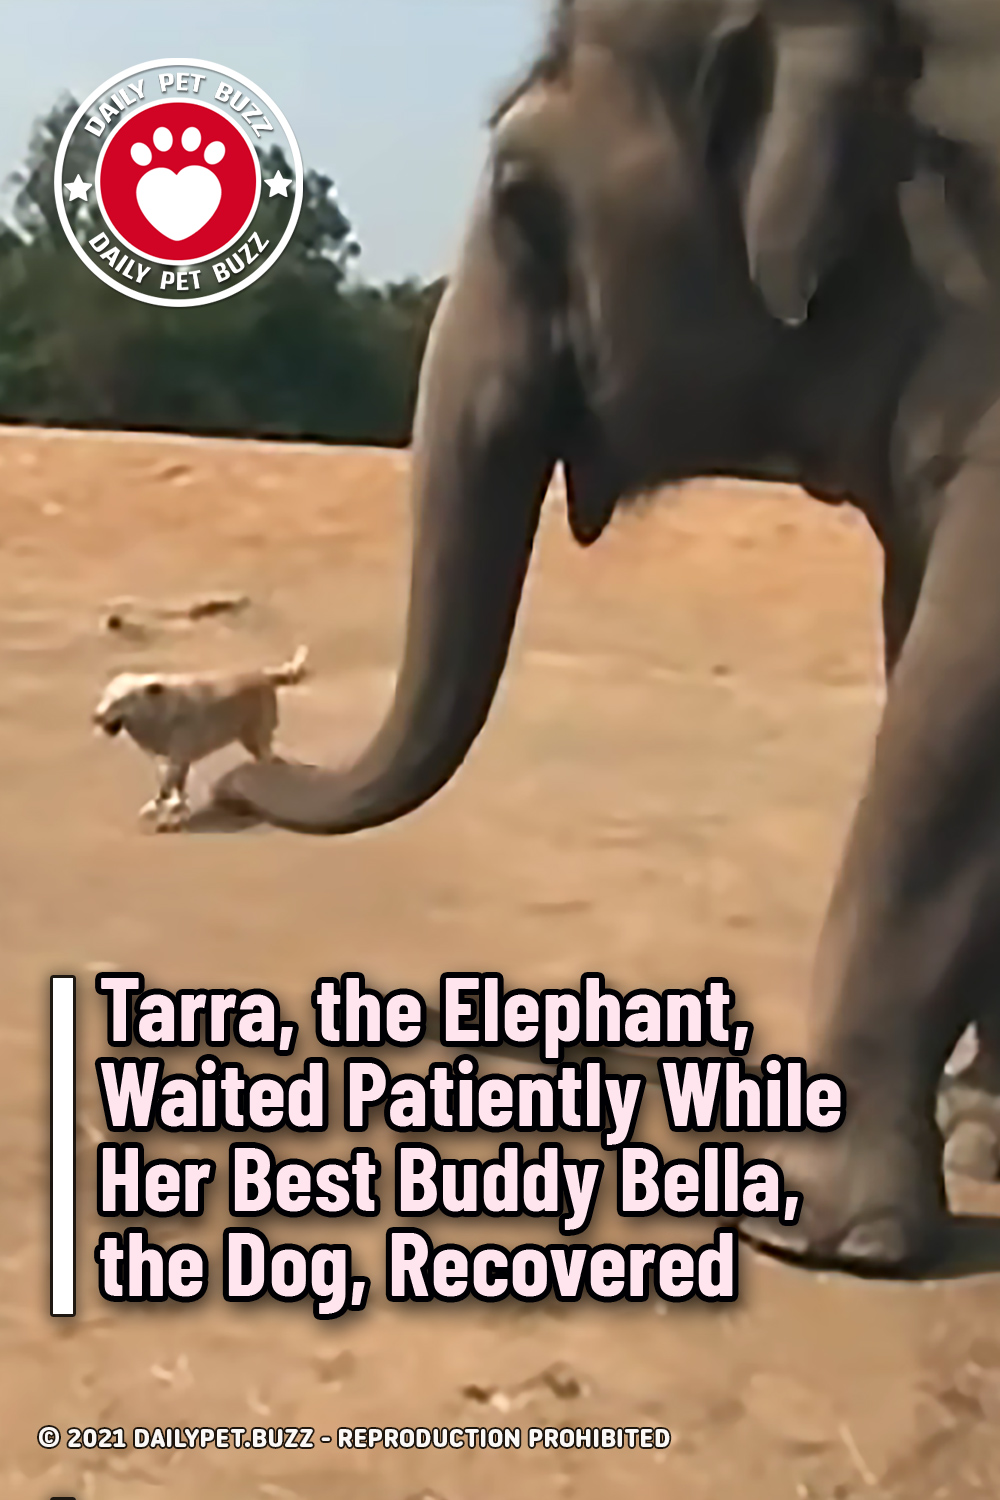 Tarra, the Elephant, Waited Patiently While Her Best Buddy Bella, the Dog, Recovered